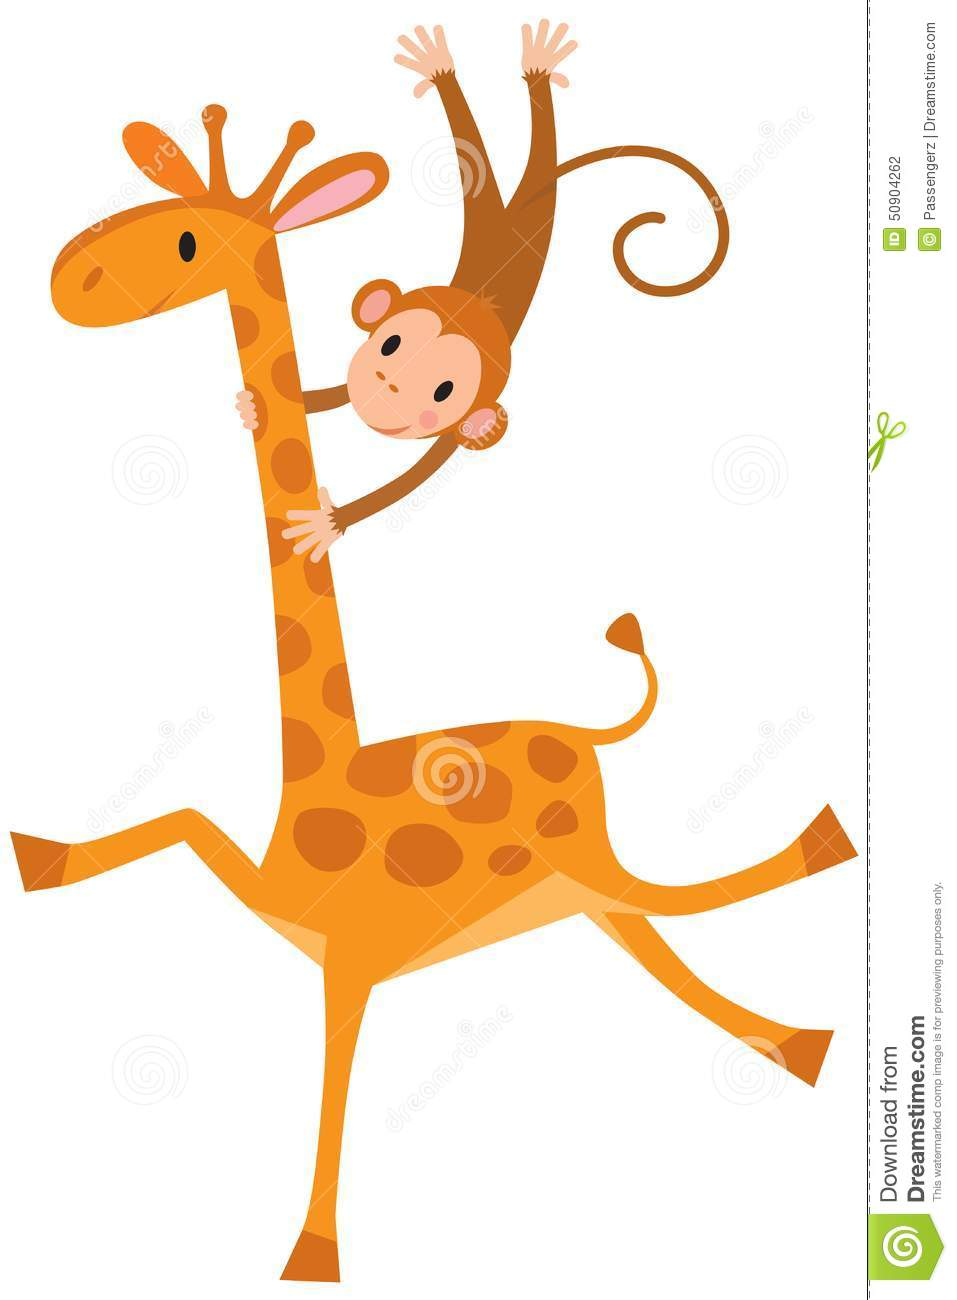 Animals furthermore Royalty Free Stock Photo Cartoon Tarantula Image38063345 in addition Top 91 Giraffe Clipart as well Cute Cartoon Animals Page 2 moreover Stock Illustration Funny Giraffe Monkey Litlle Children Vector Illustration Image50904262. on funny giraffe clip art